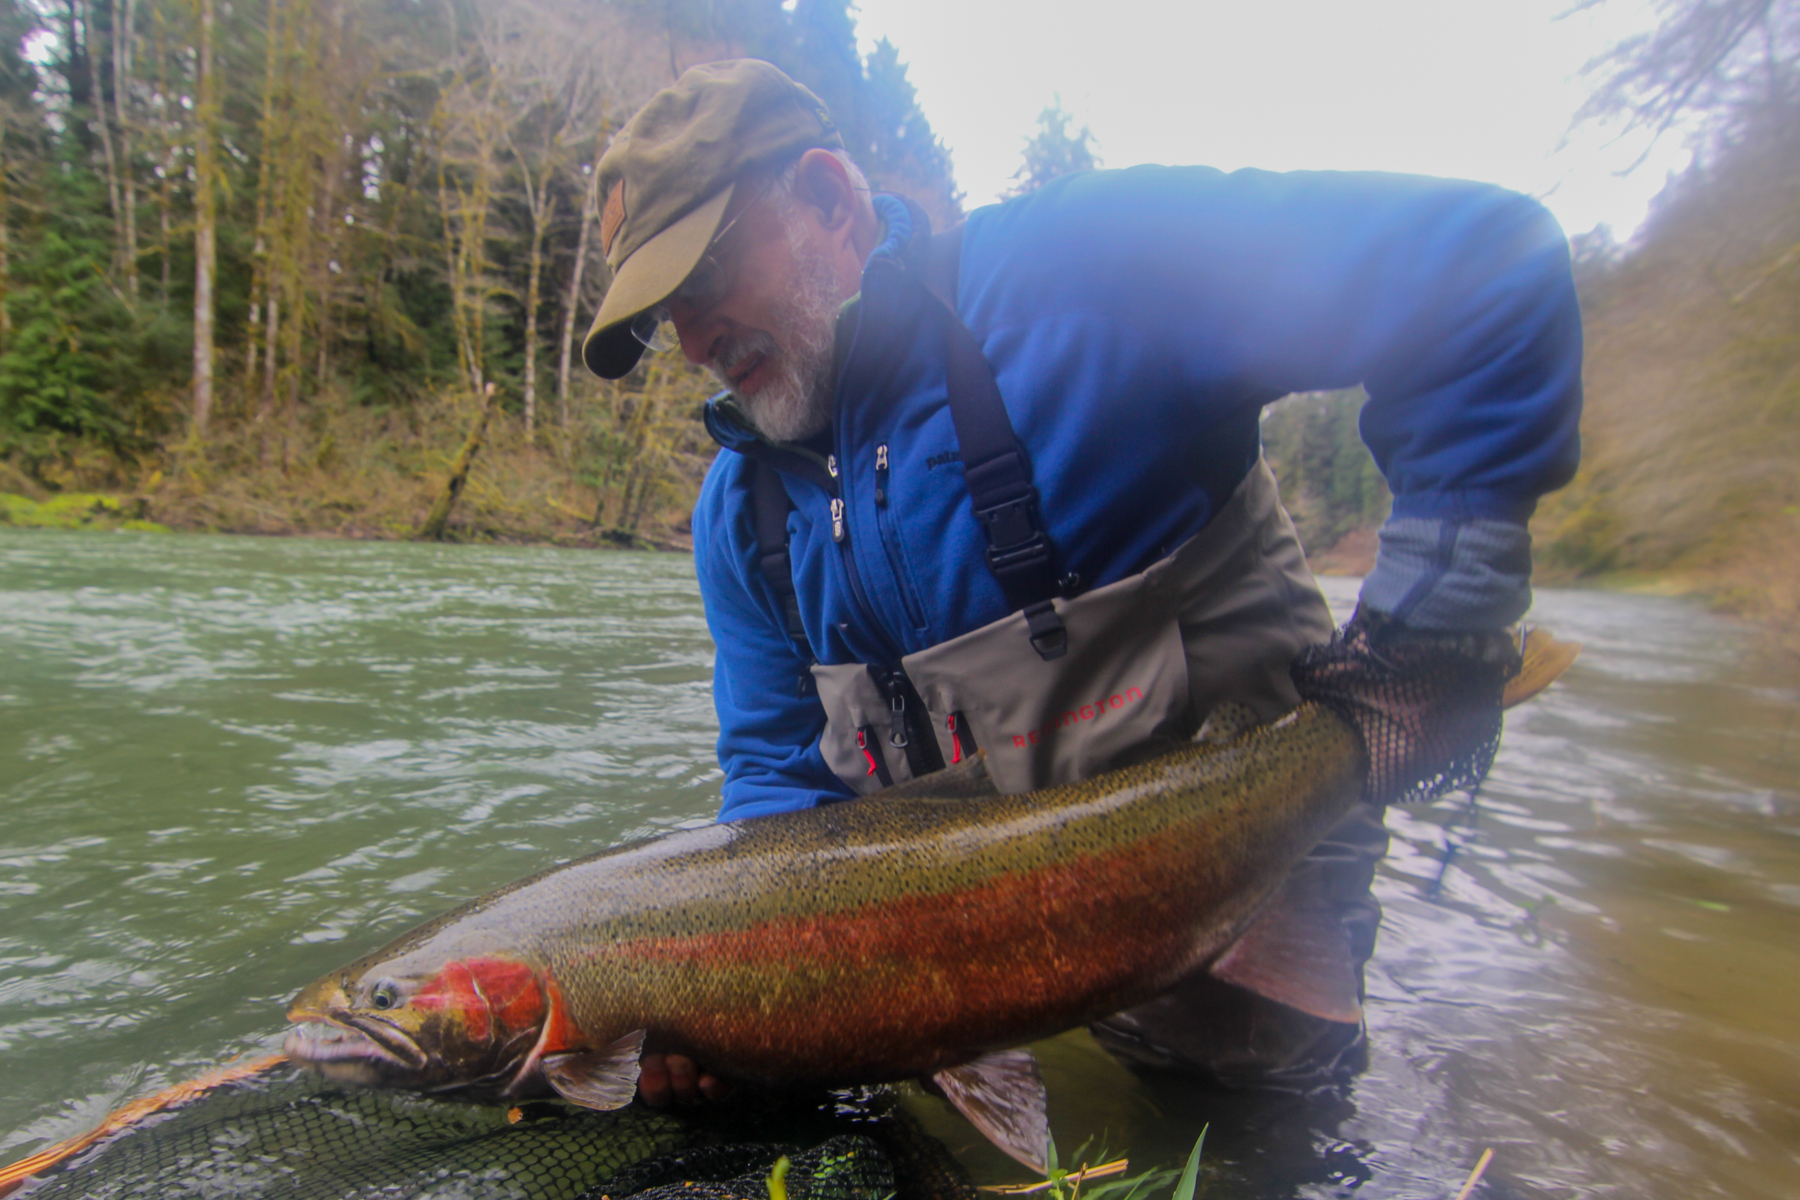 Washington state fly fishing guide archives angler 39 s for Washington state fish